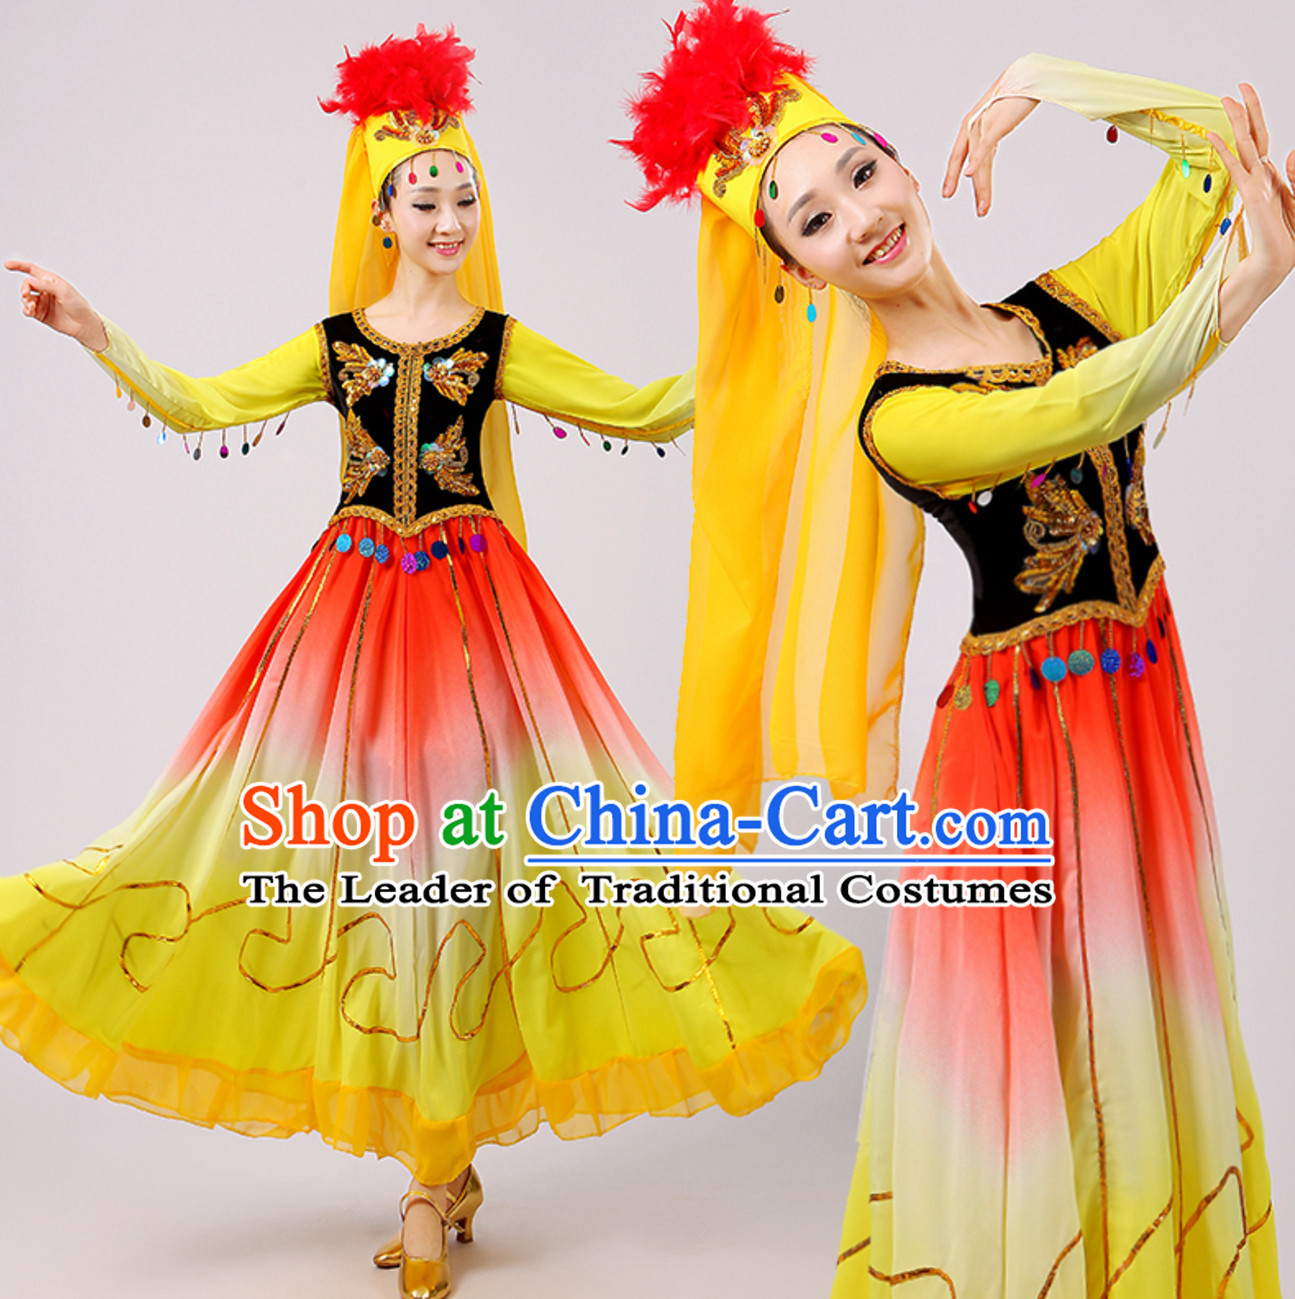 Traditional Xinjiang Dance Costumes for Adults Chinese Minority Ethnic Dance Outfits